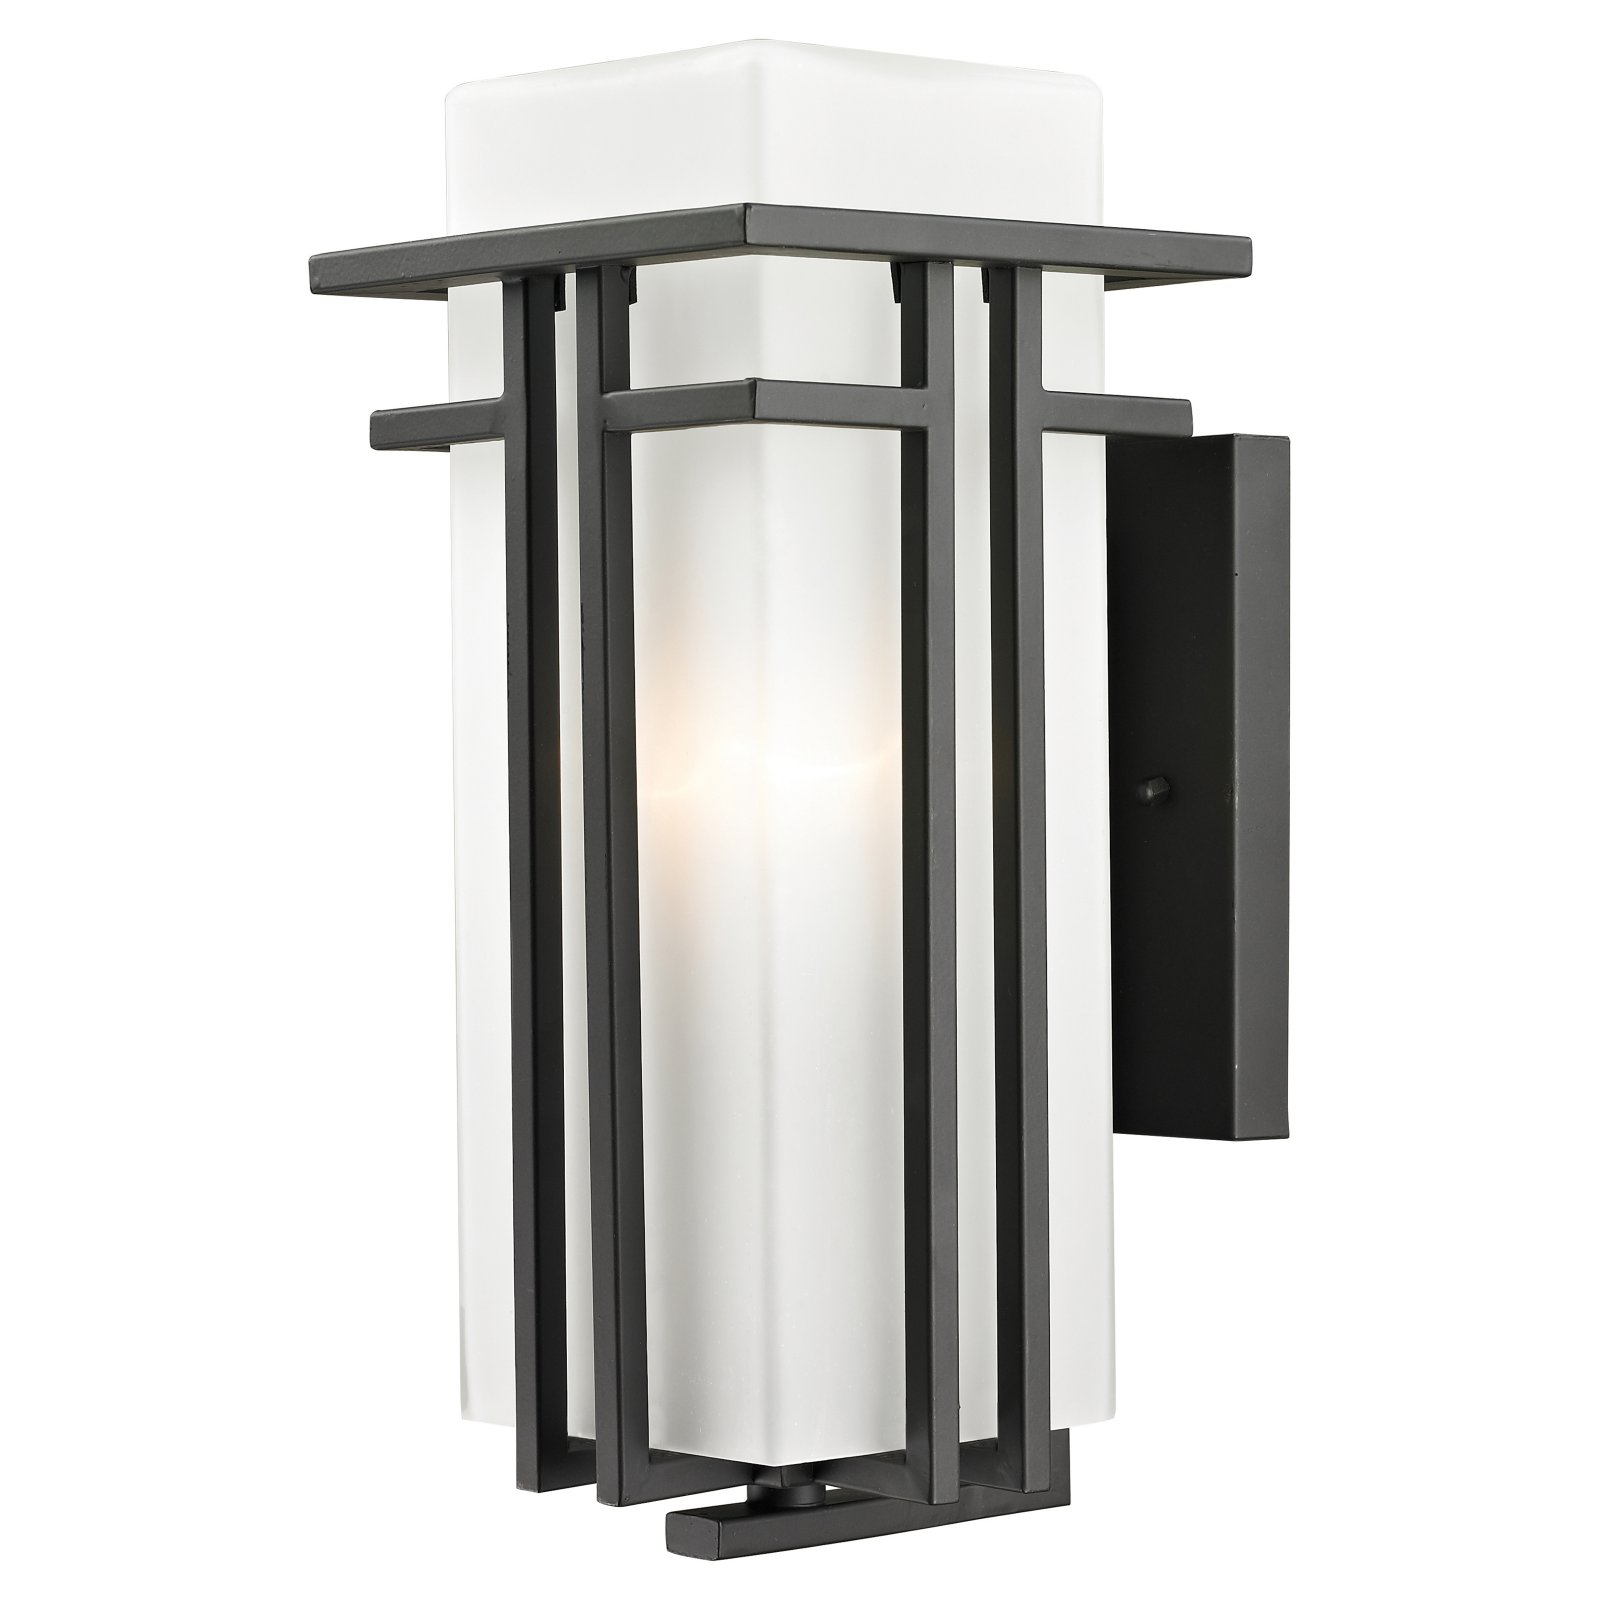 Z-Lite Abbey Outdoor 1-Light Wall Scone, Outdoor Rubbed Bronze